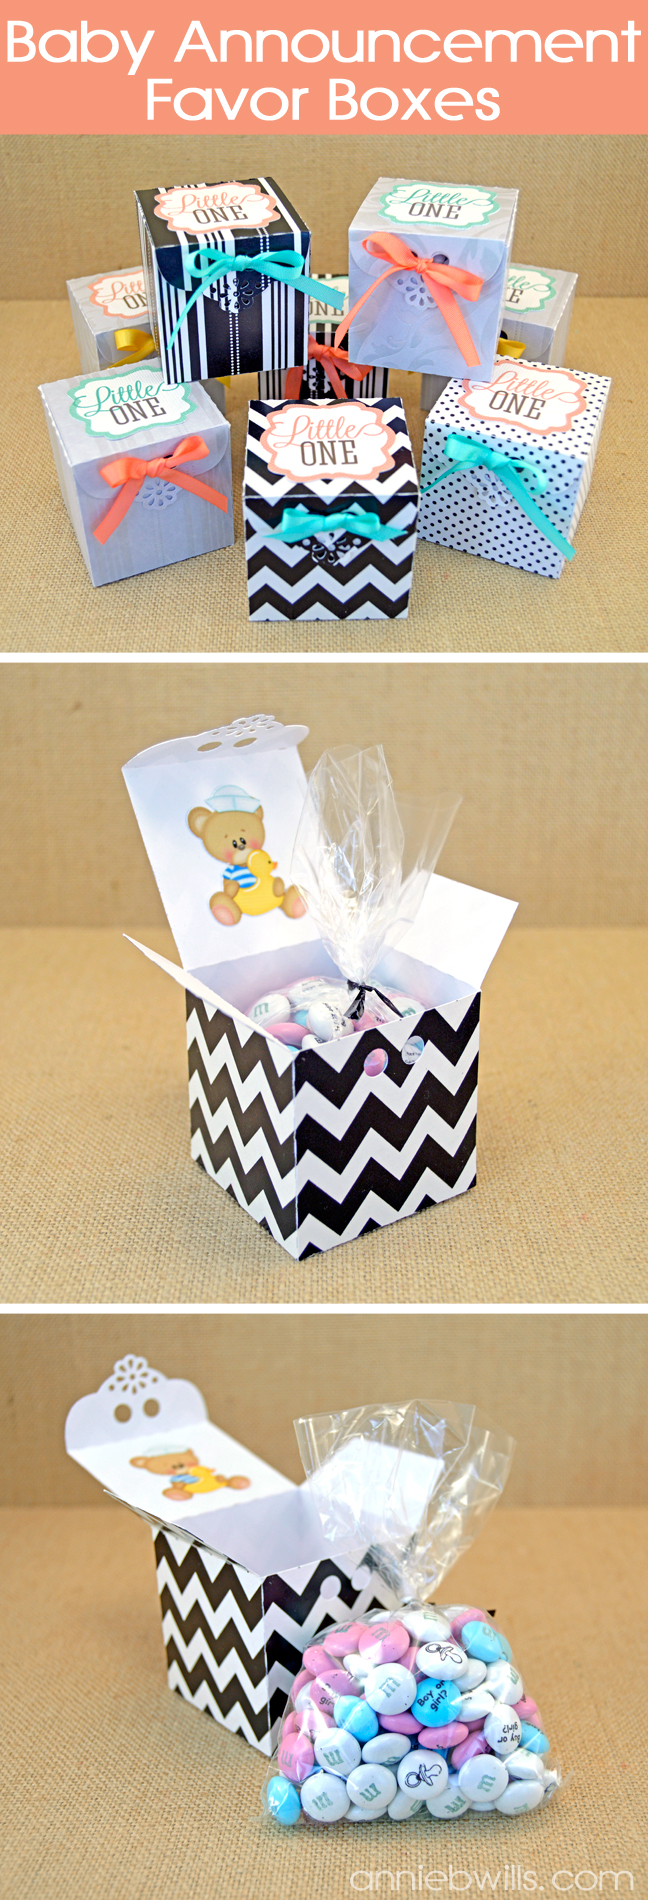 Baby Announcement Favors by Annie Williams - Collage